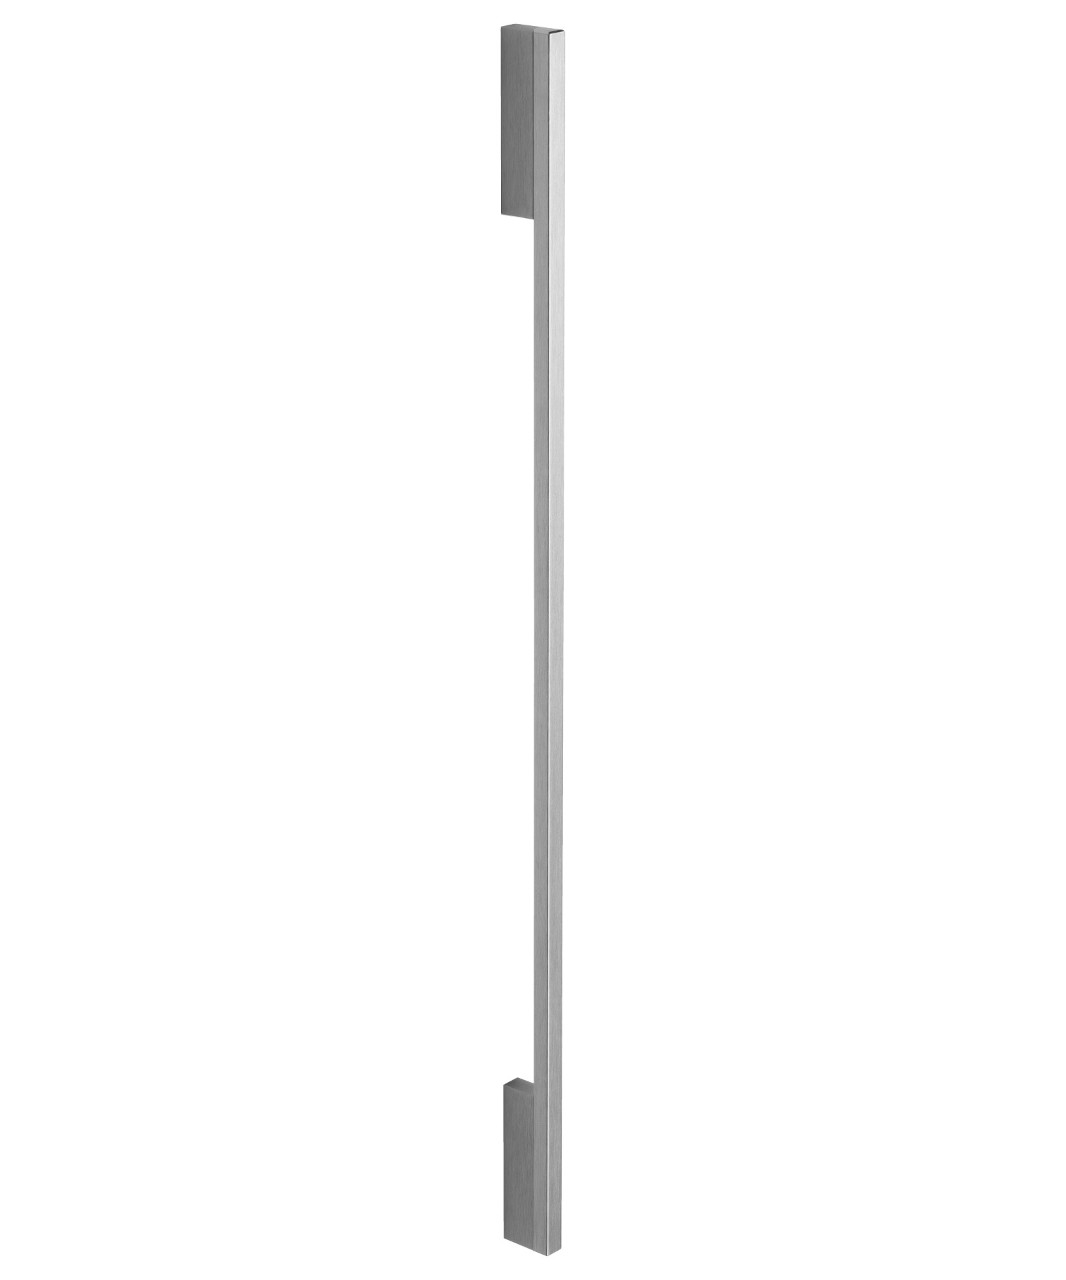 Model: 24979 | Fisher and Paykel Contemporary Square Handle Kit for Integrated Column Refrigerator or Freezer, All widths